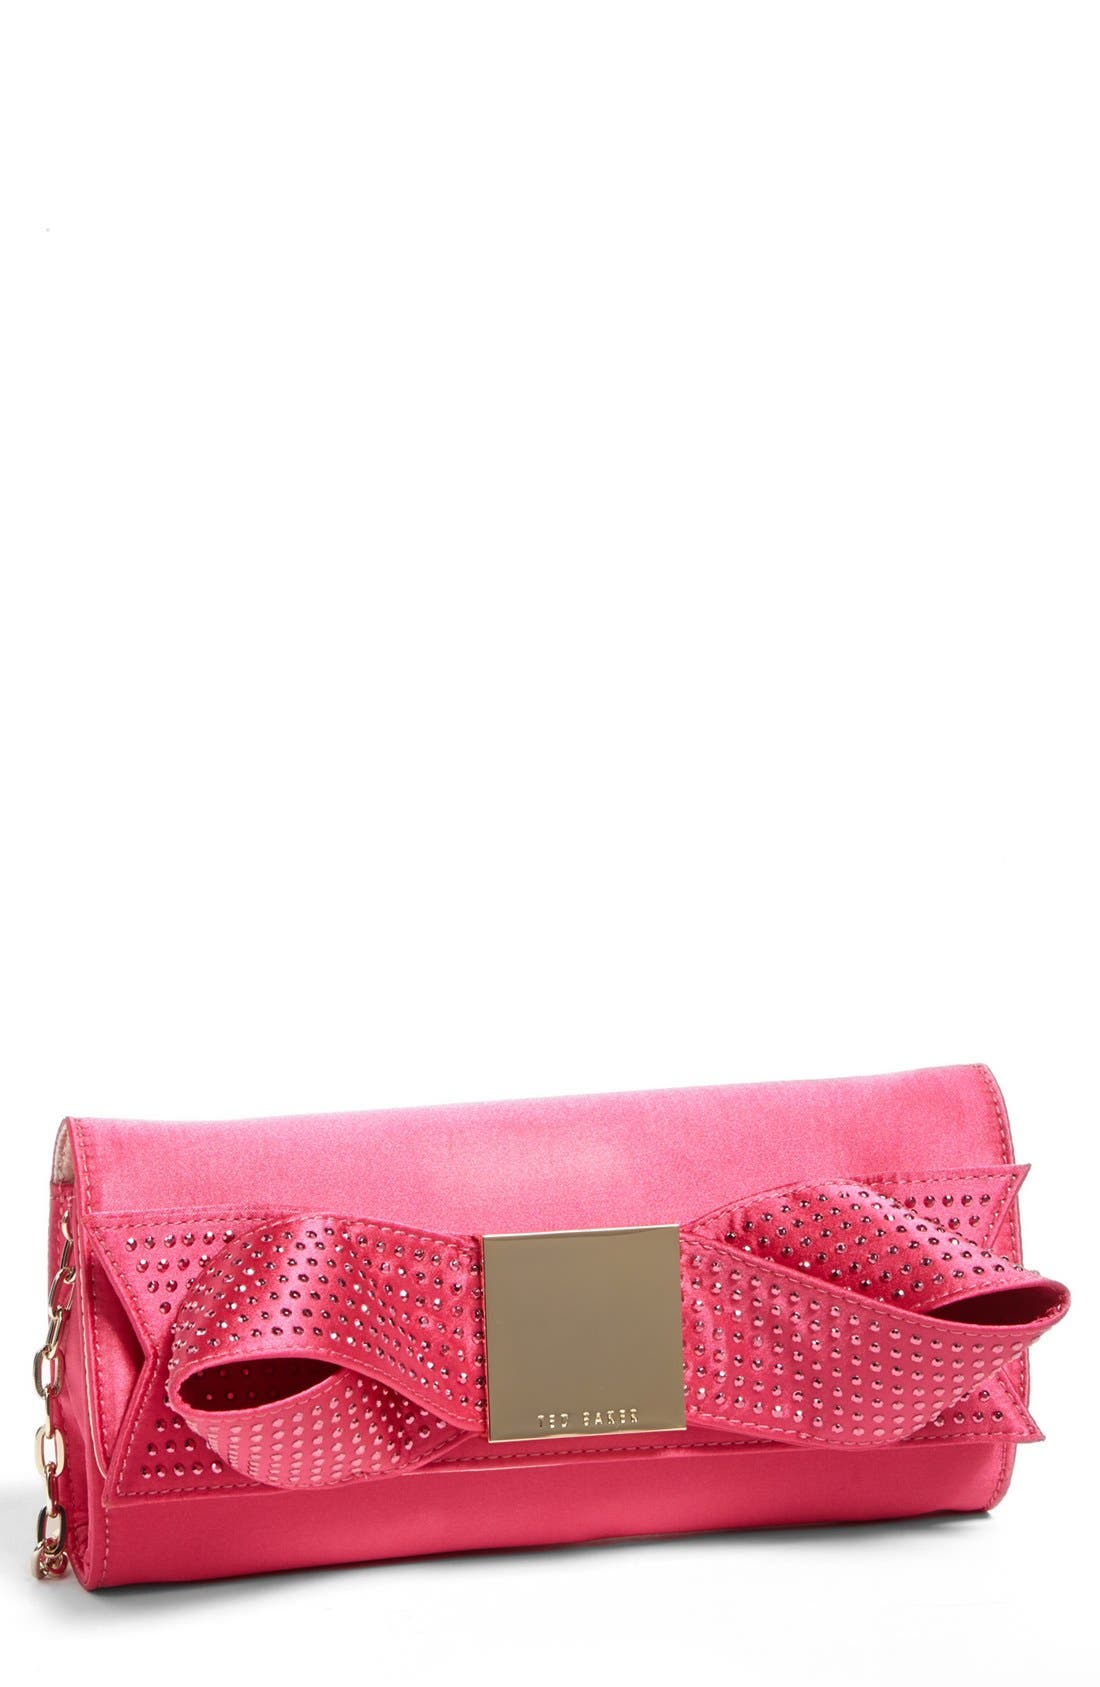 Alternate Image 1 Selected - Ted Baker London 'Holiday - Satin Bow' Clutch